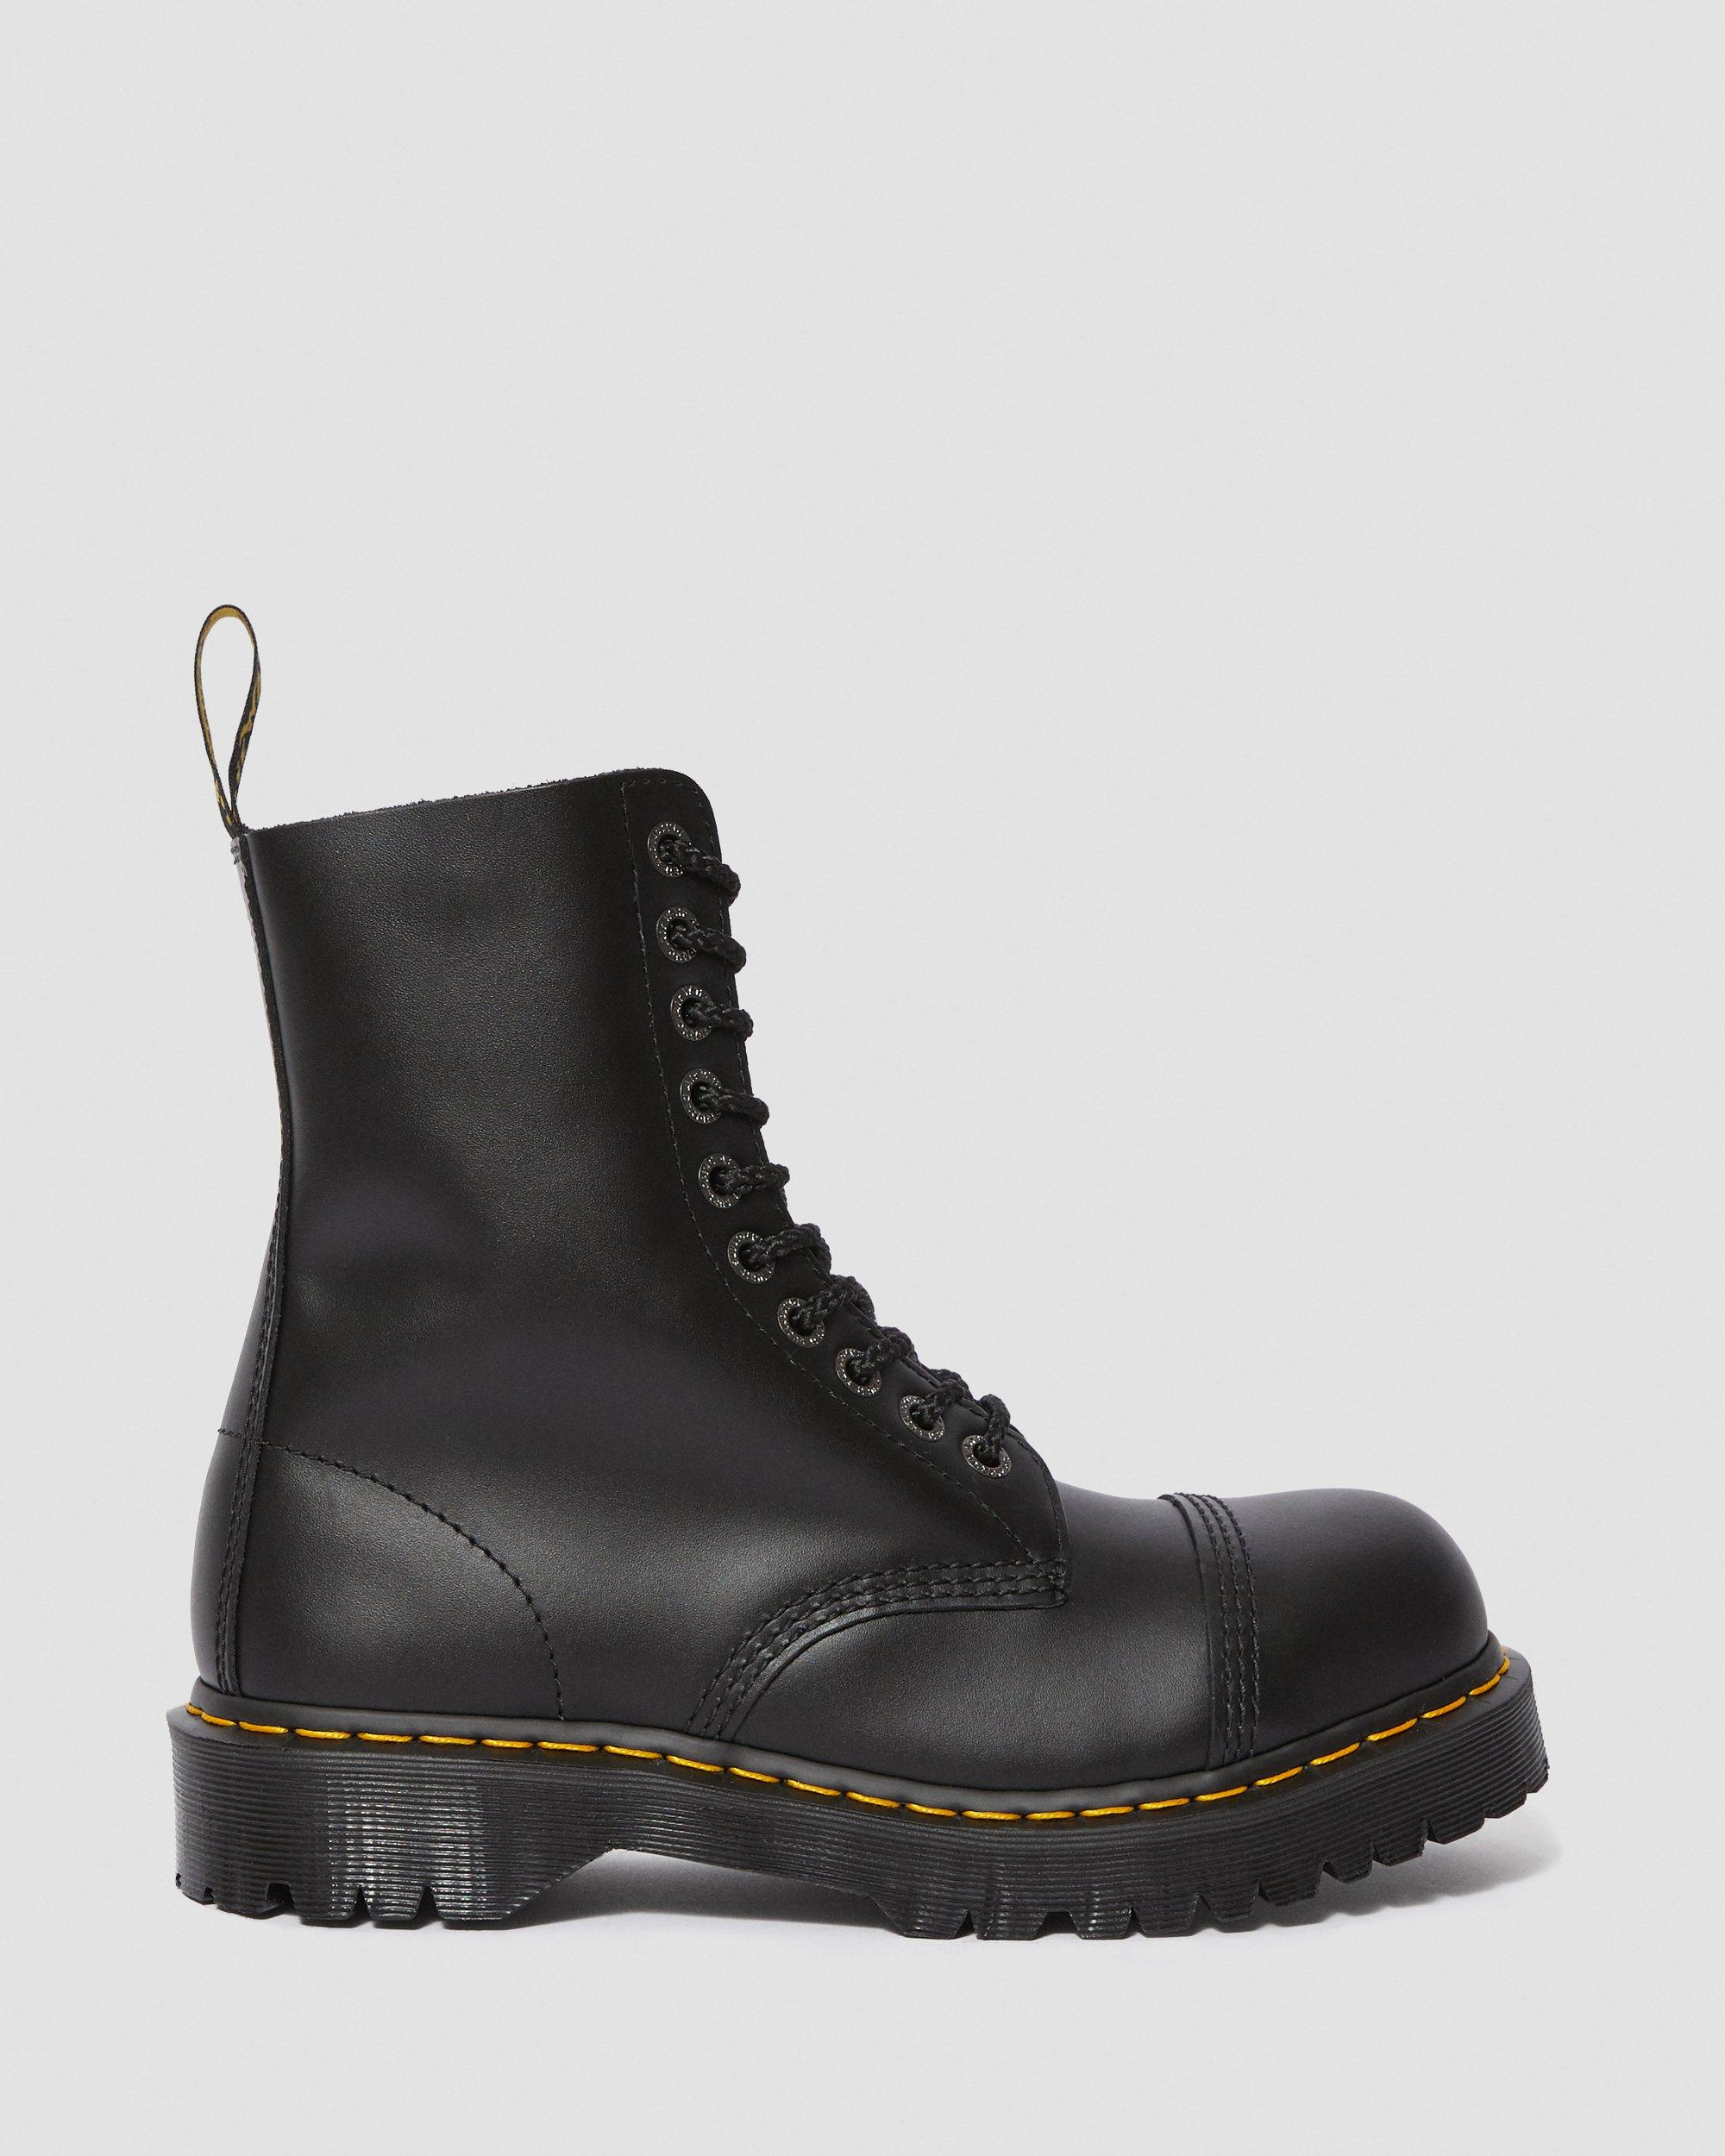 8761 BXB LEATHER MID CALF BOOTS | Dr